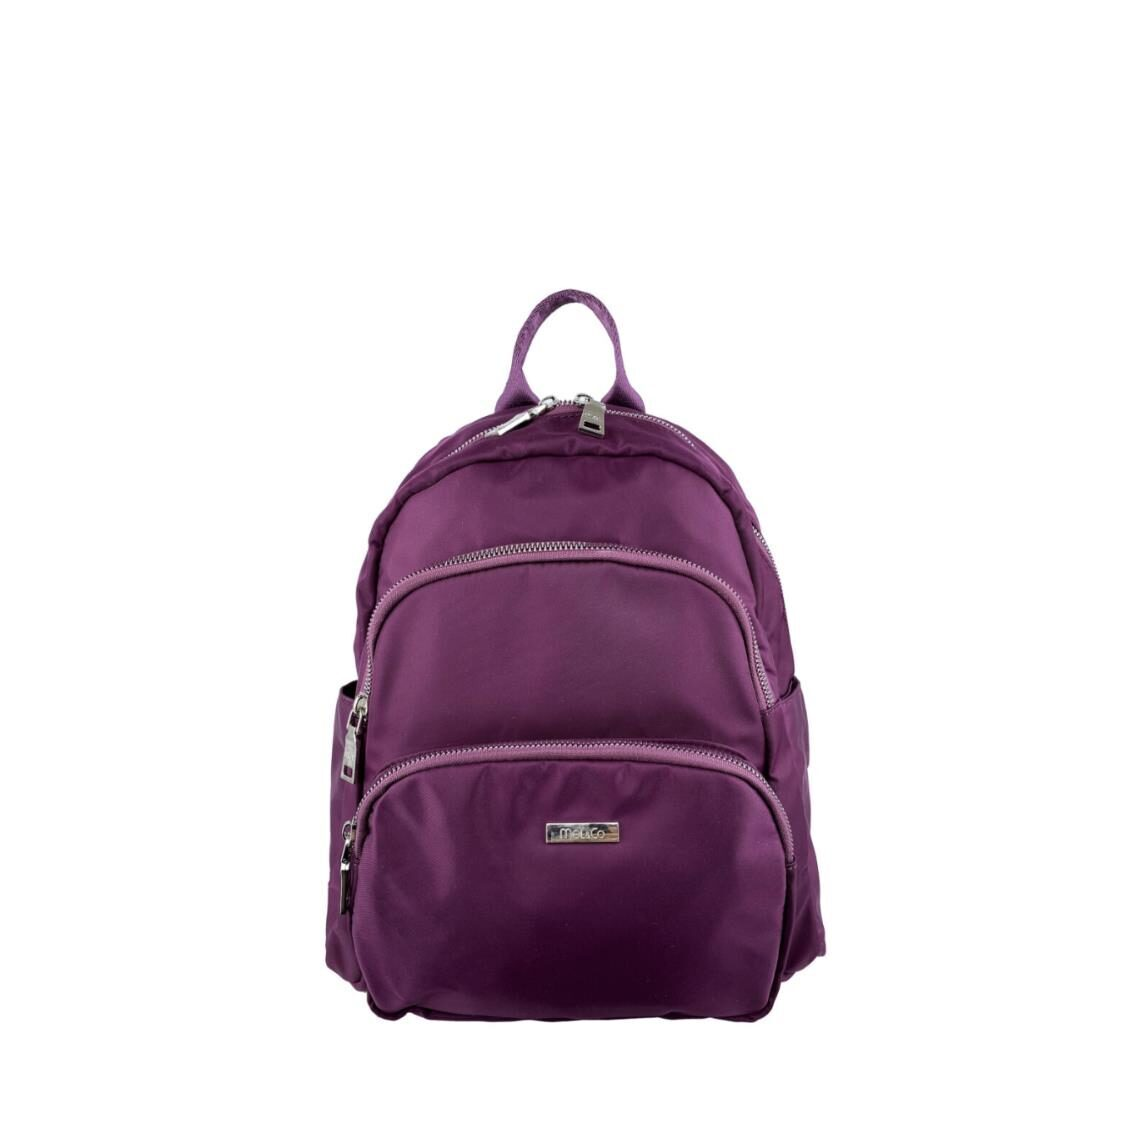 MelCo Nylon Round Top 3 Layer Backpack